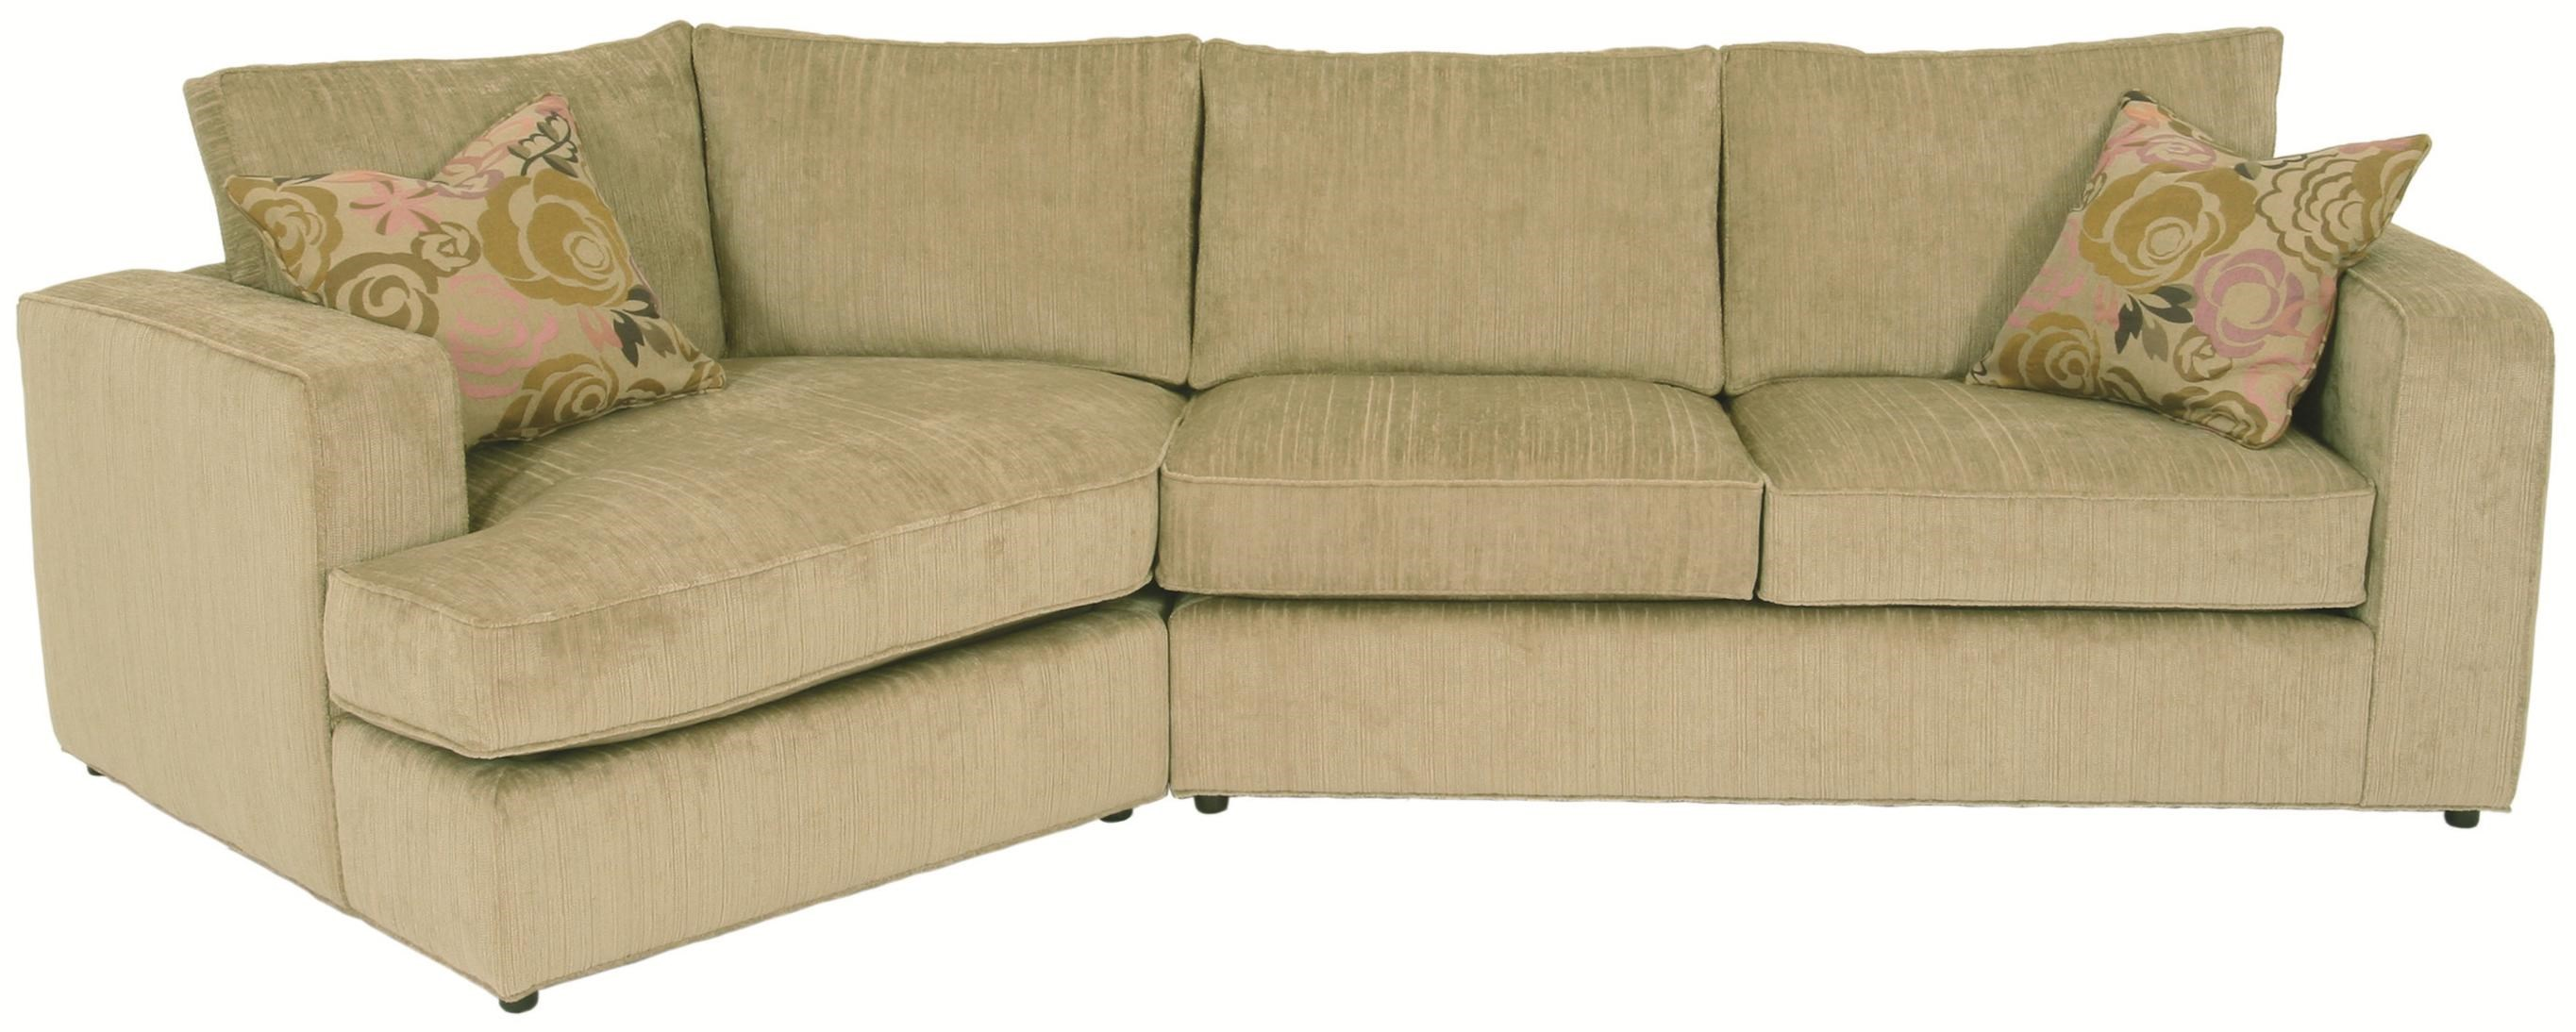 norwalk milford sectional sofa with